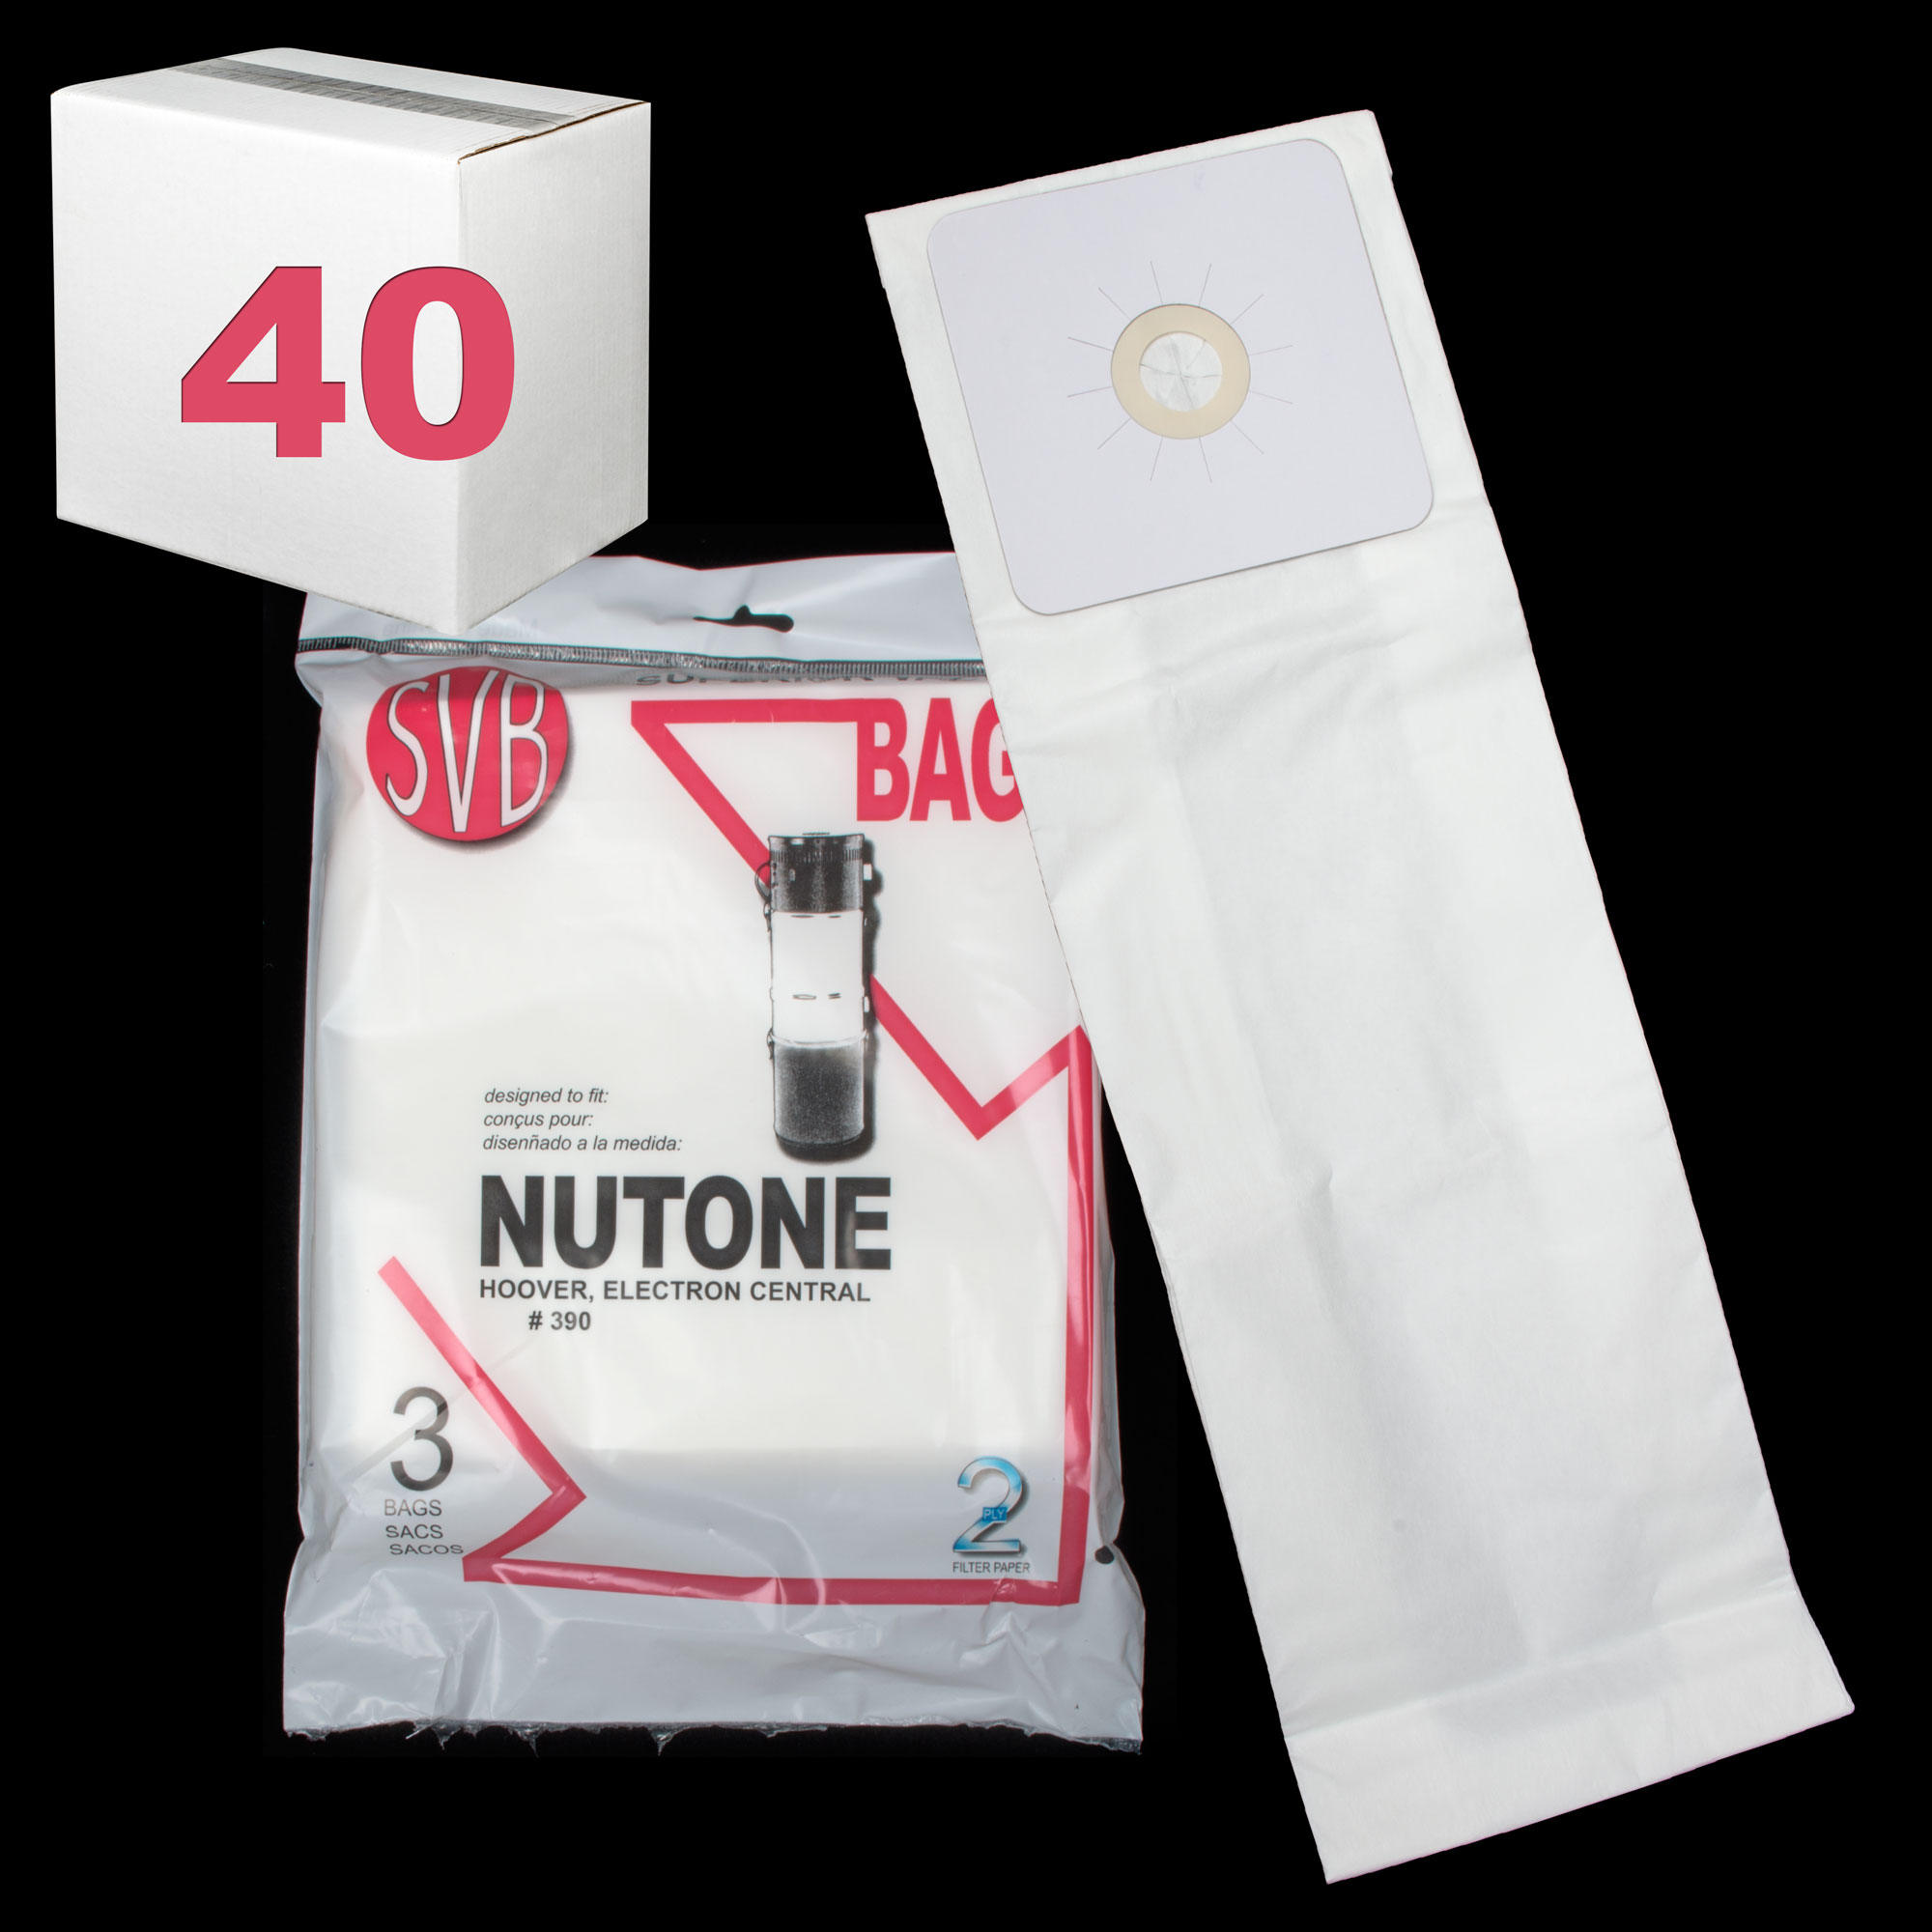 Electron Sc190 Sc300 Central Powerflite Upright Hoover Paper Bag 3 Pack Case Of 40